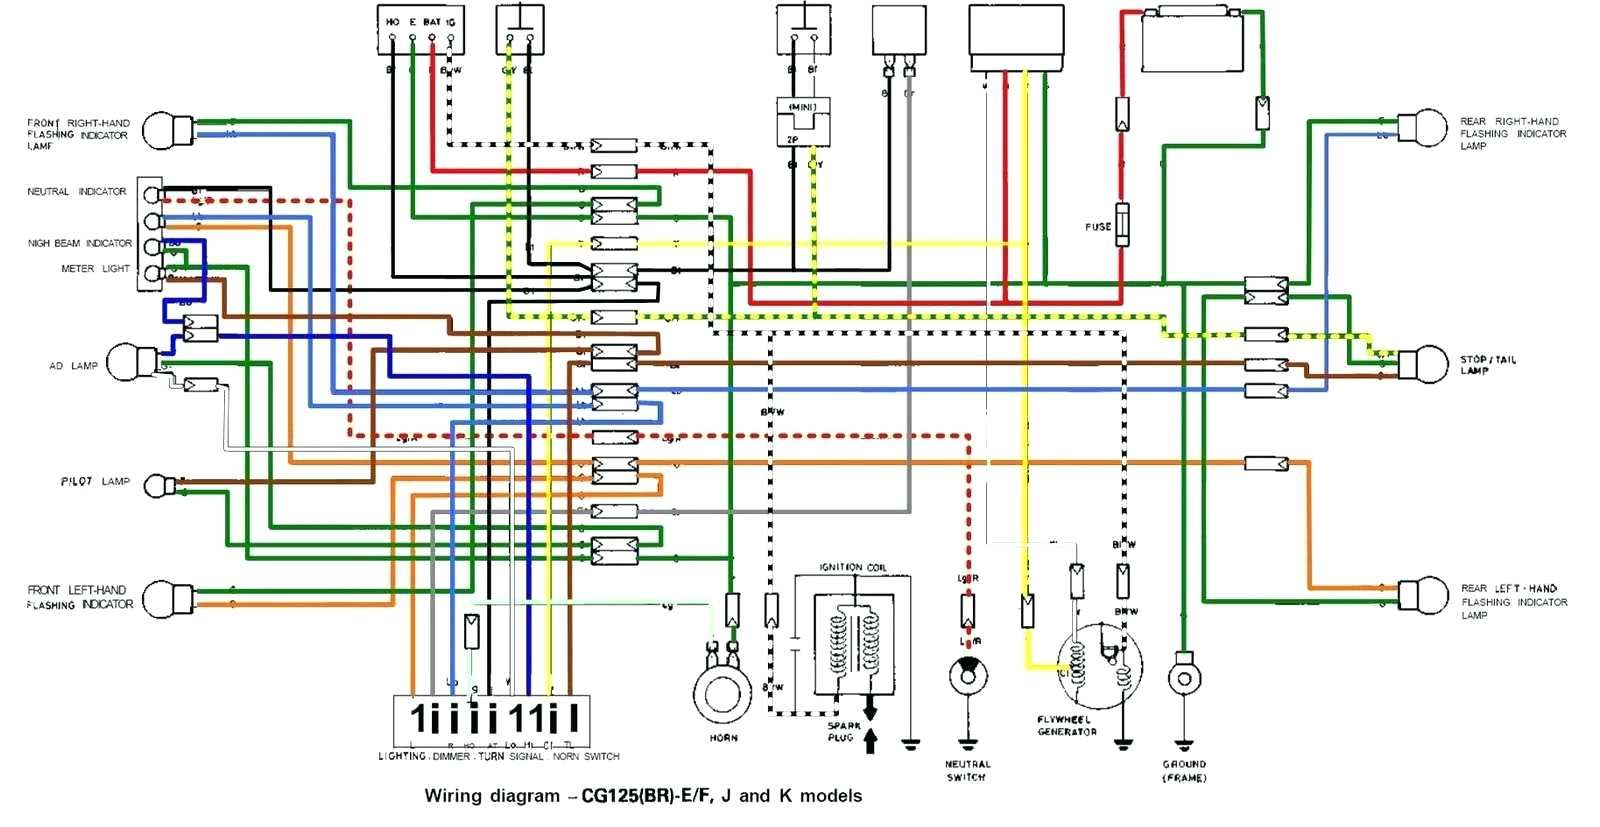 hight resolution of honda xrm 125 wiring diagram photography cheat sheets honda xrm signal light wiring honda xrm 125